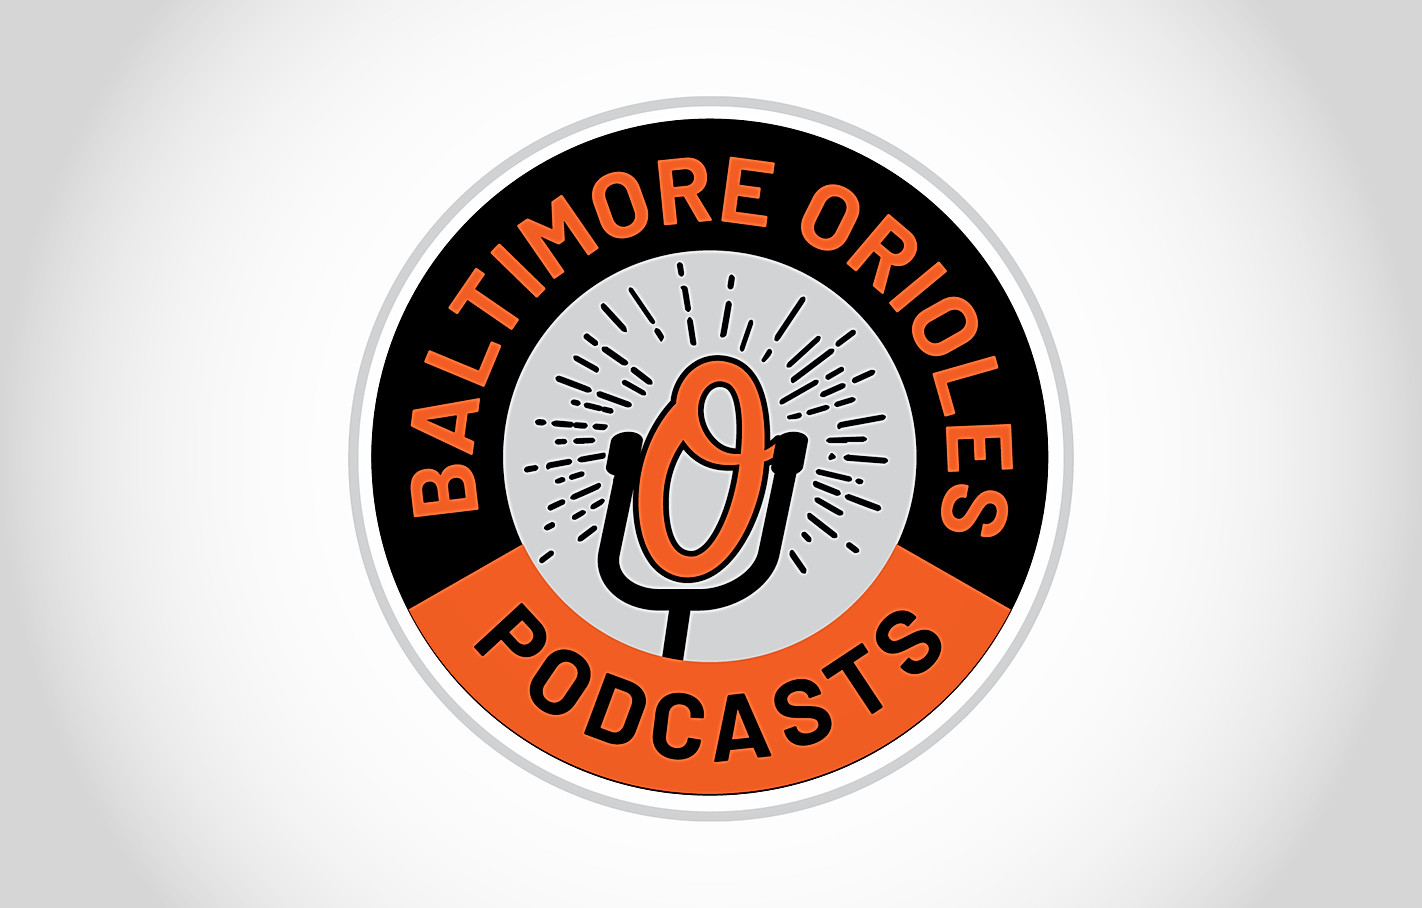 Orioles Podcasts Logo